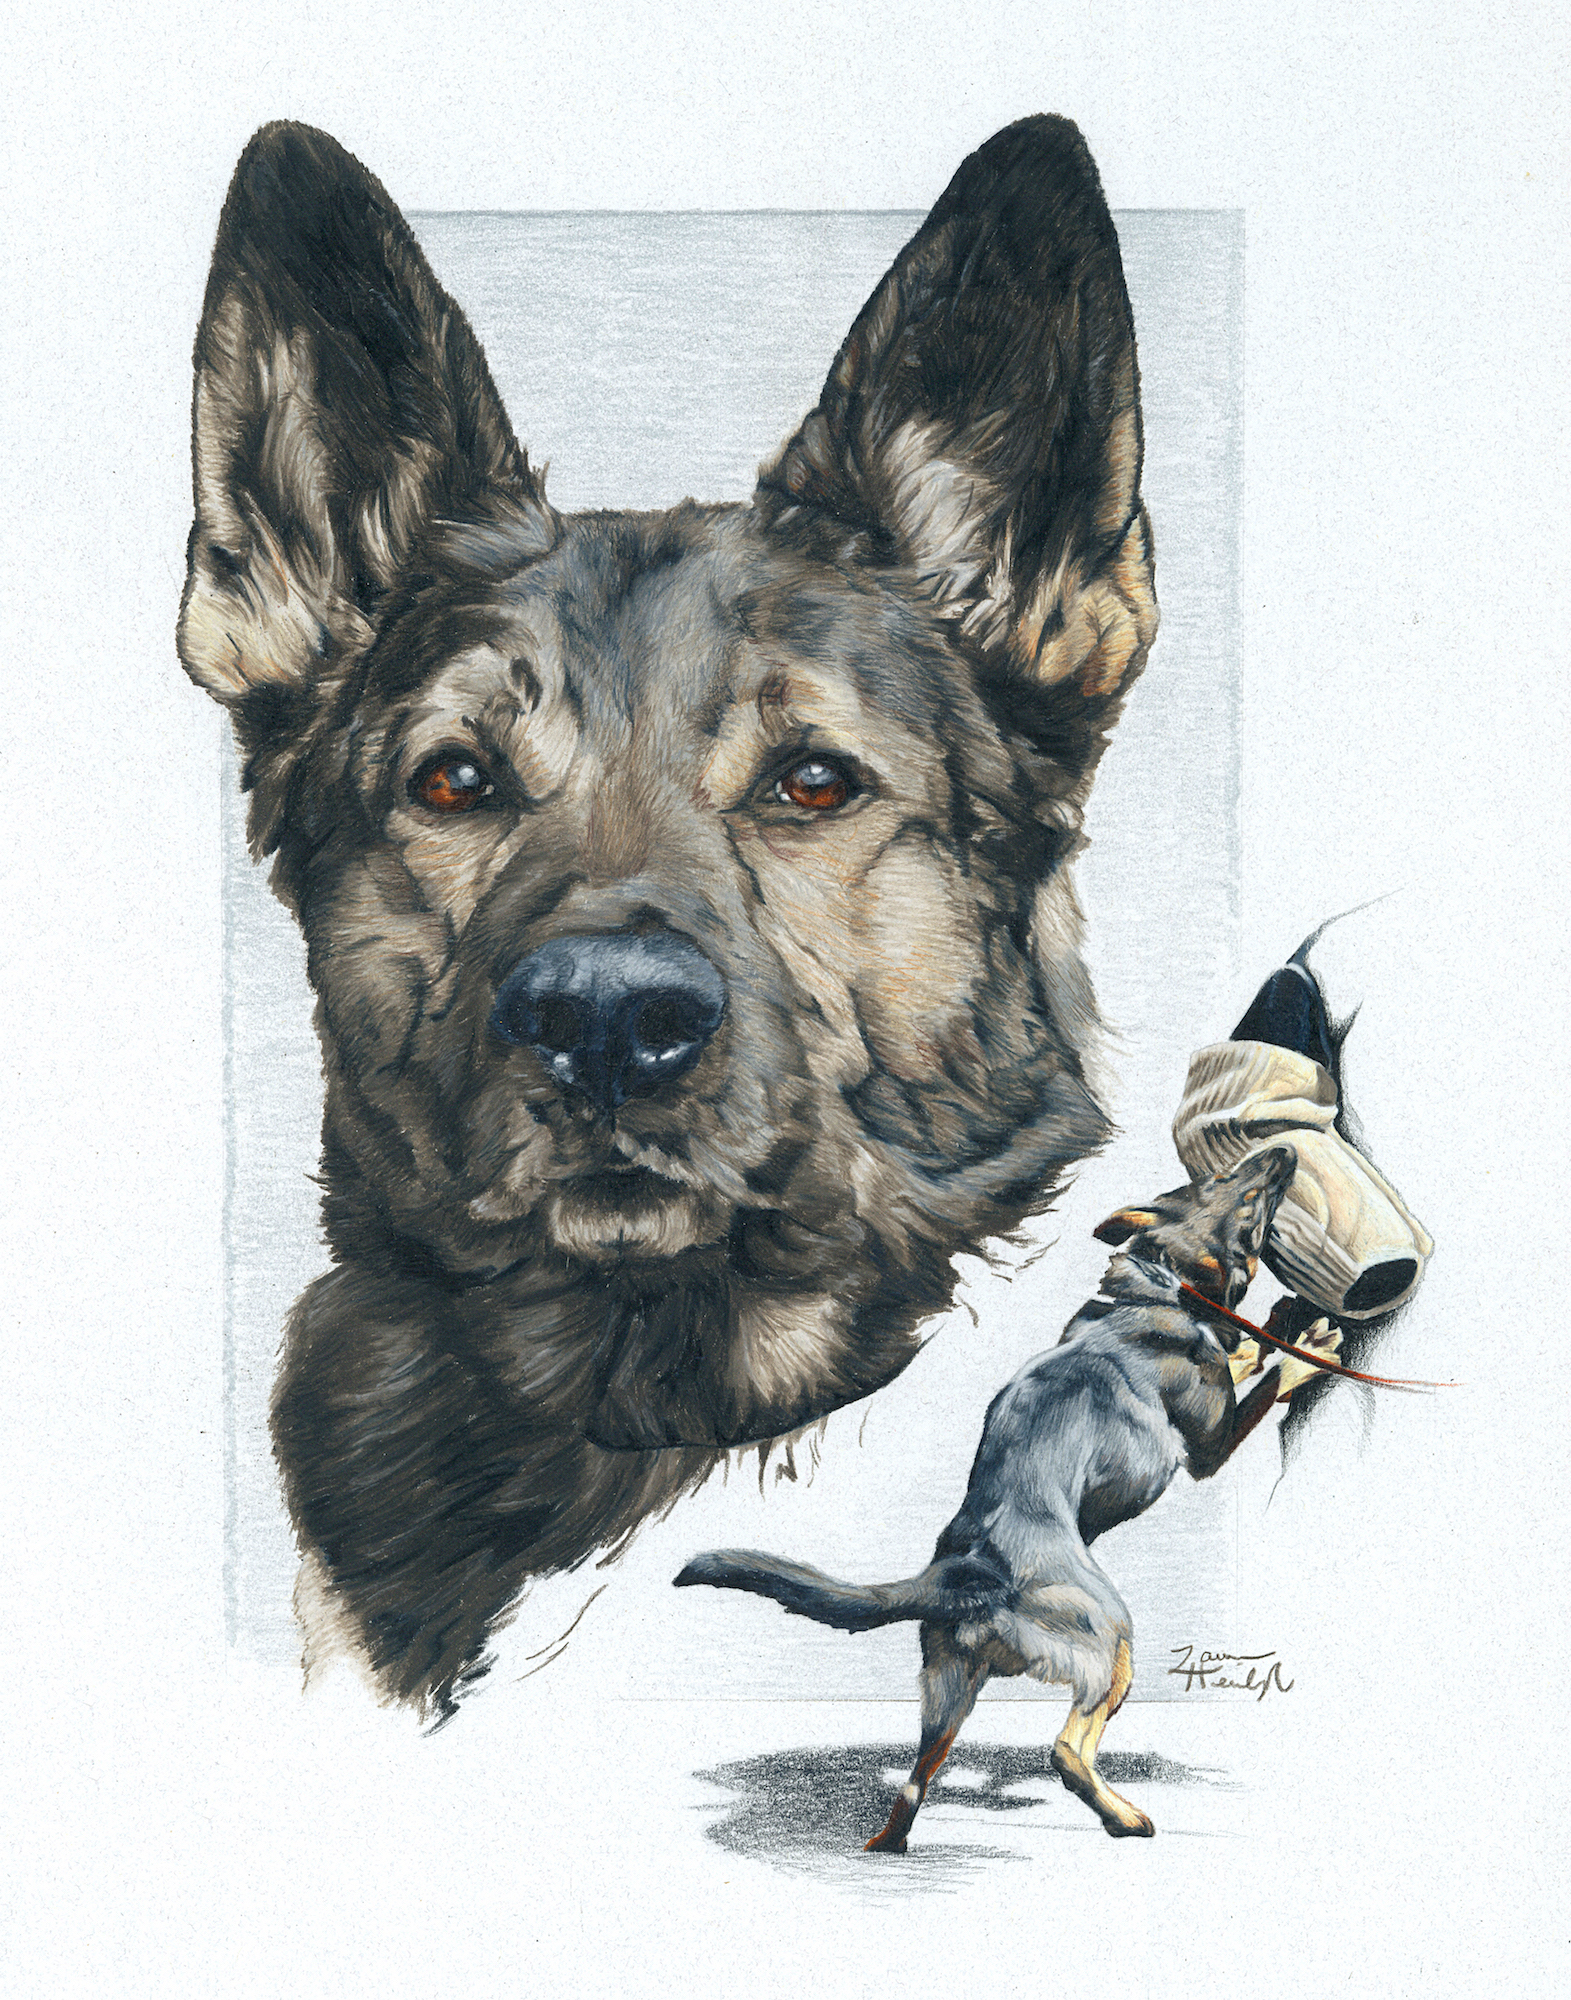 Missoula PD K9 Halo the German Shepherd (2015)